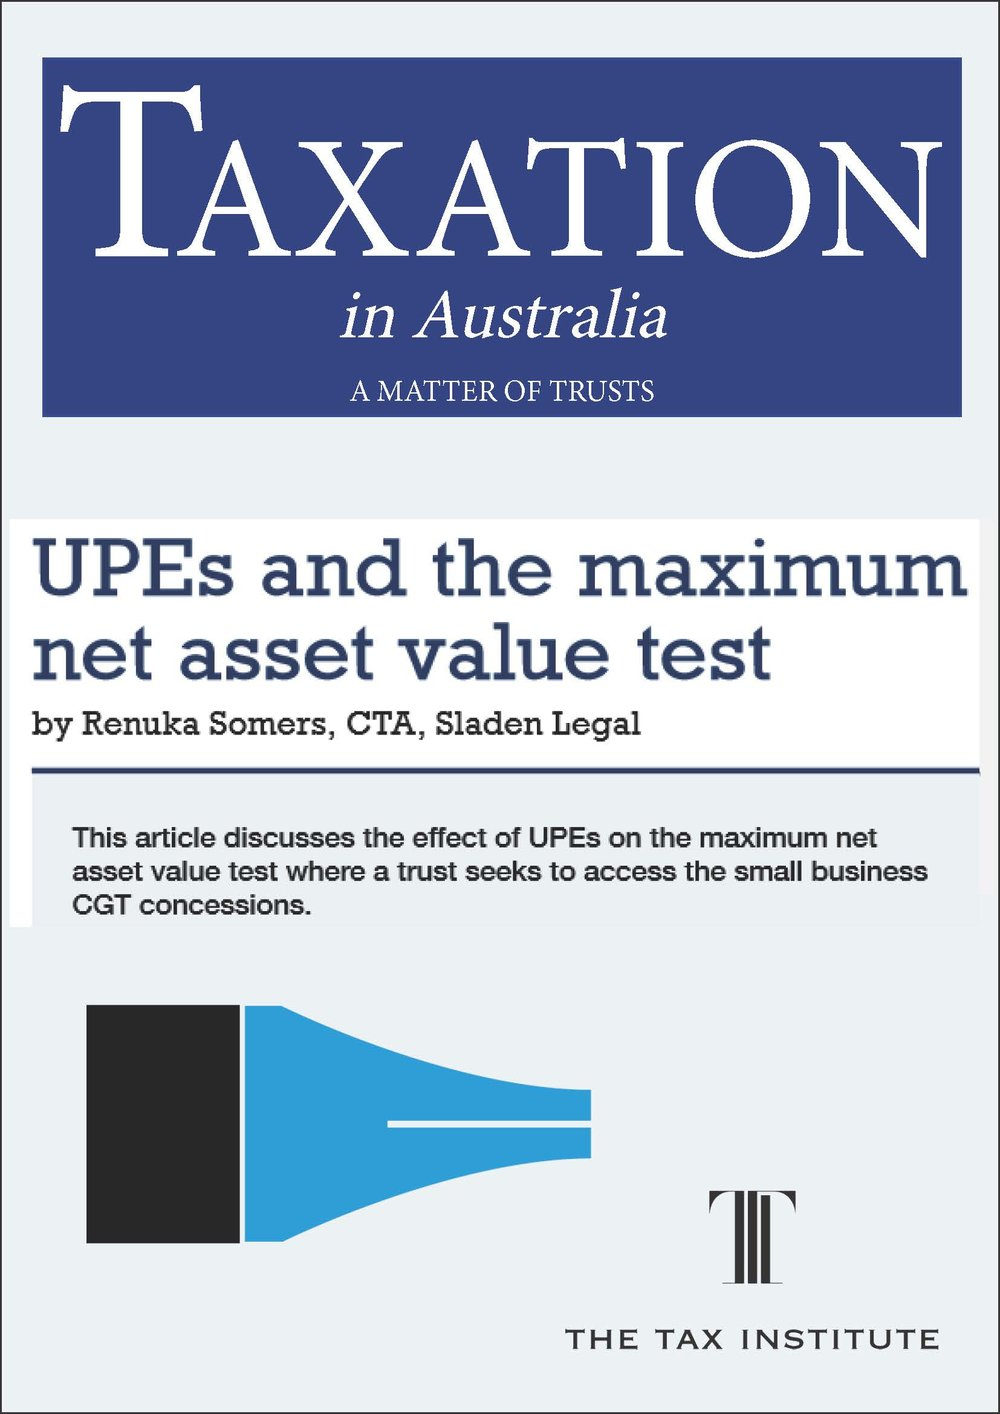 UPEs and the maximum net asset value test 22 January 2015